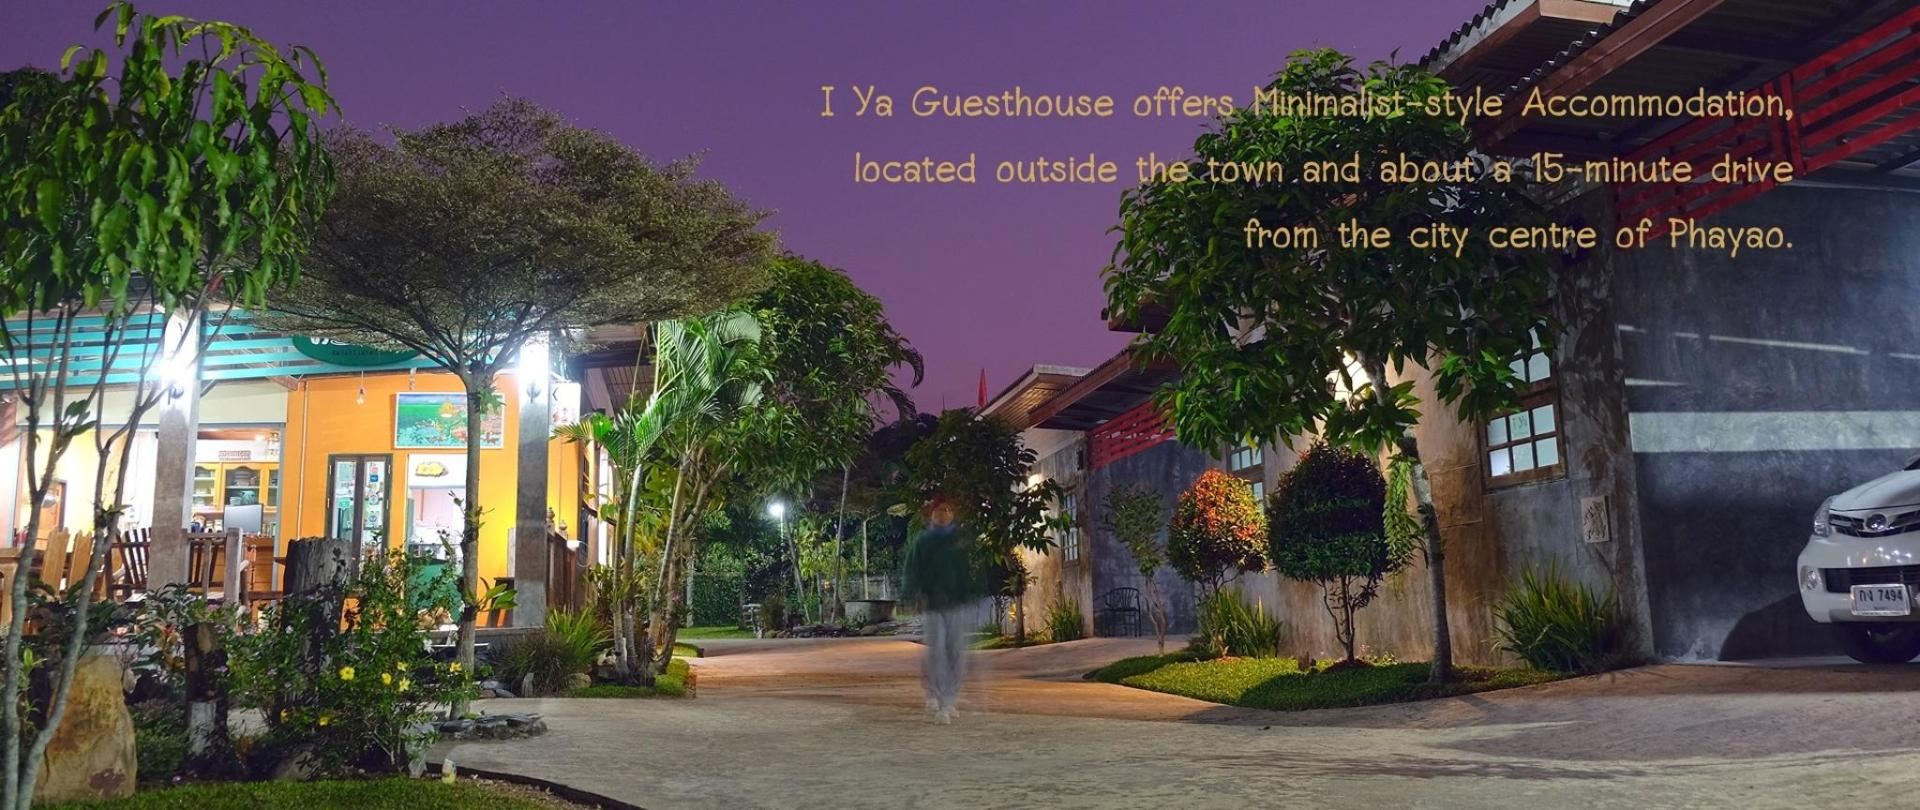 Owner/ Secured Paraking/ Property Building/ Coffee Shop/ Place to eat andCommunal kitchen